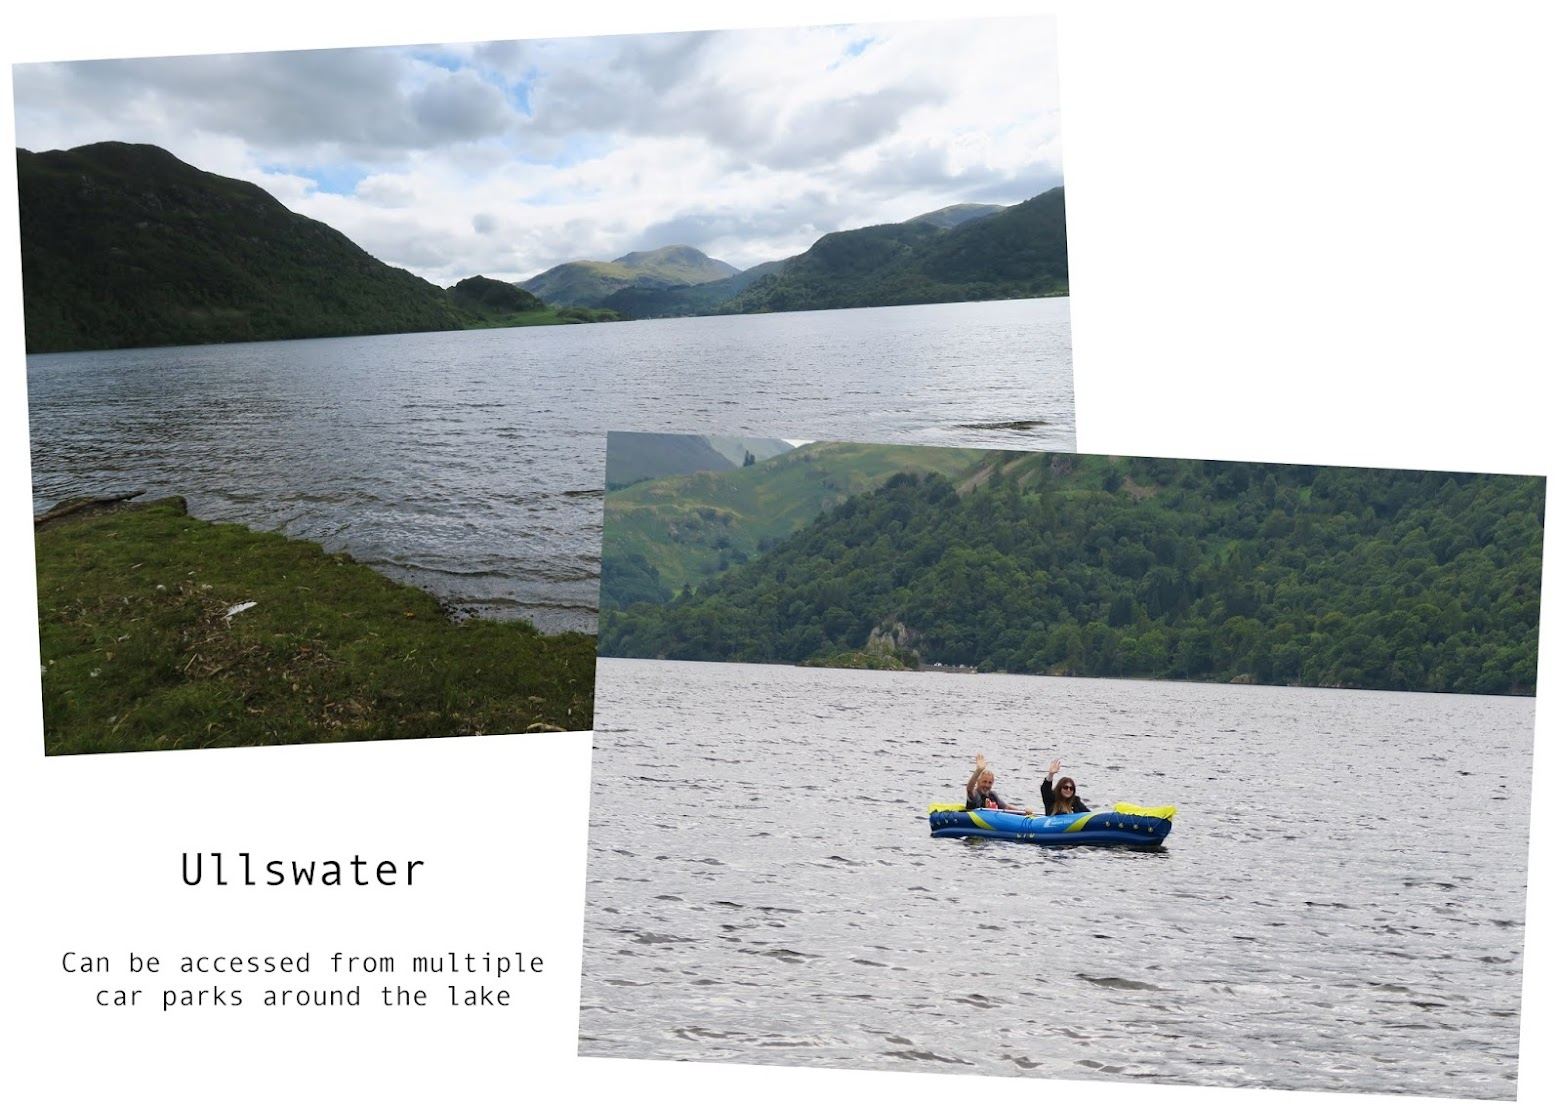 two images. the first image is a view of Ullswater lake from the shore. The second image is of Grace and her father in a blow up kayak